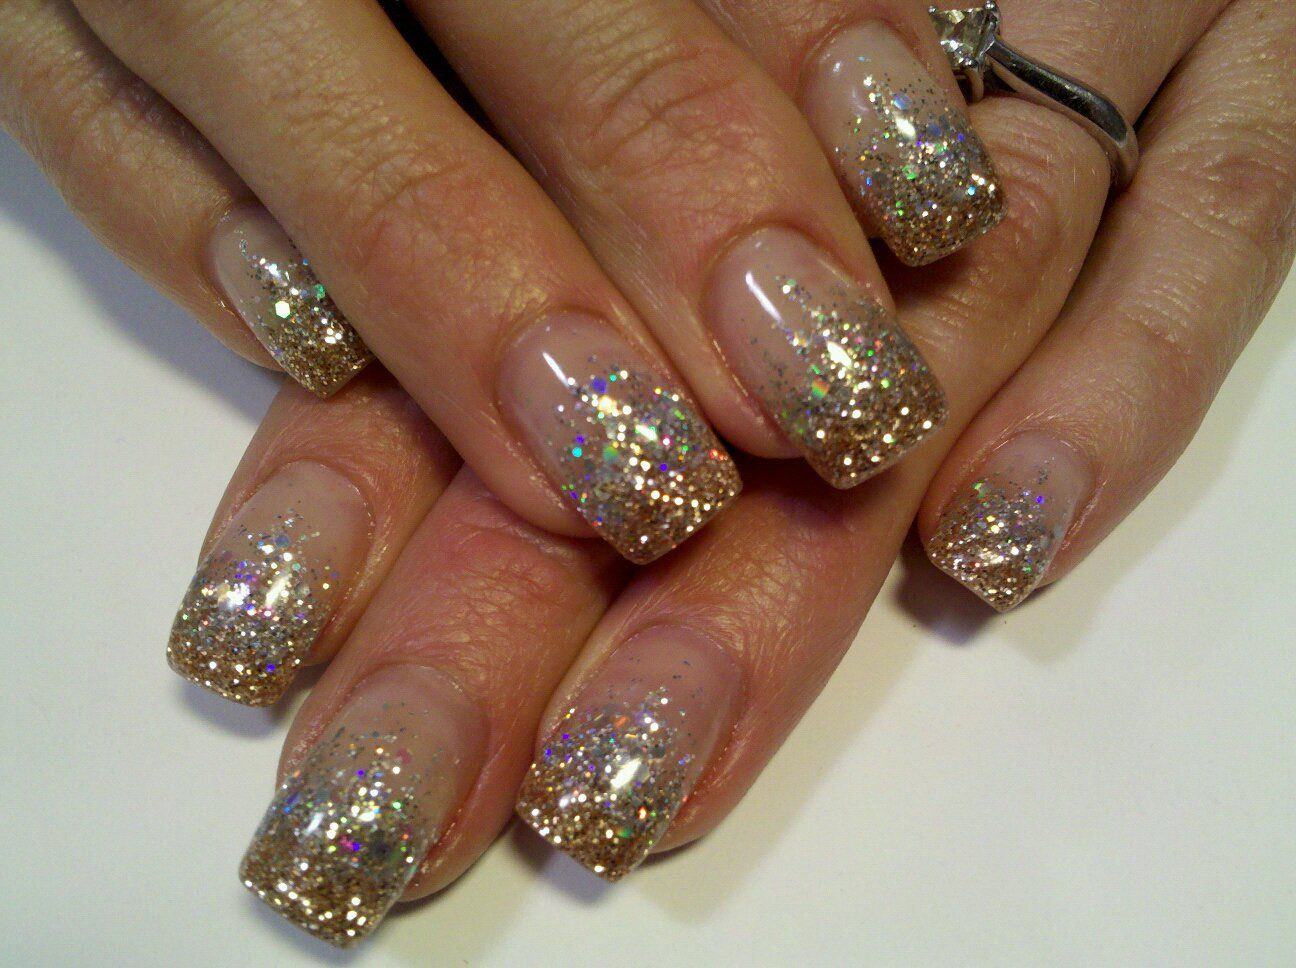 Super Sparkle Silver and Gold Glitter Gel Nails | My Work | Pinterest